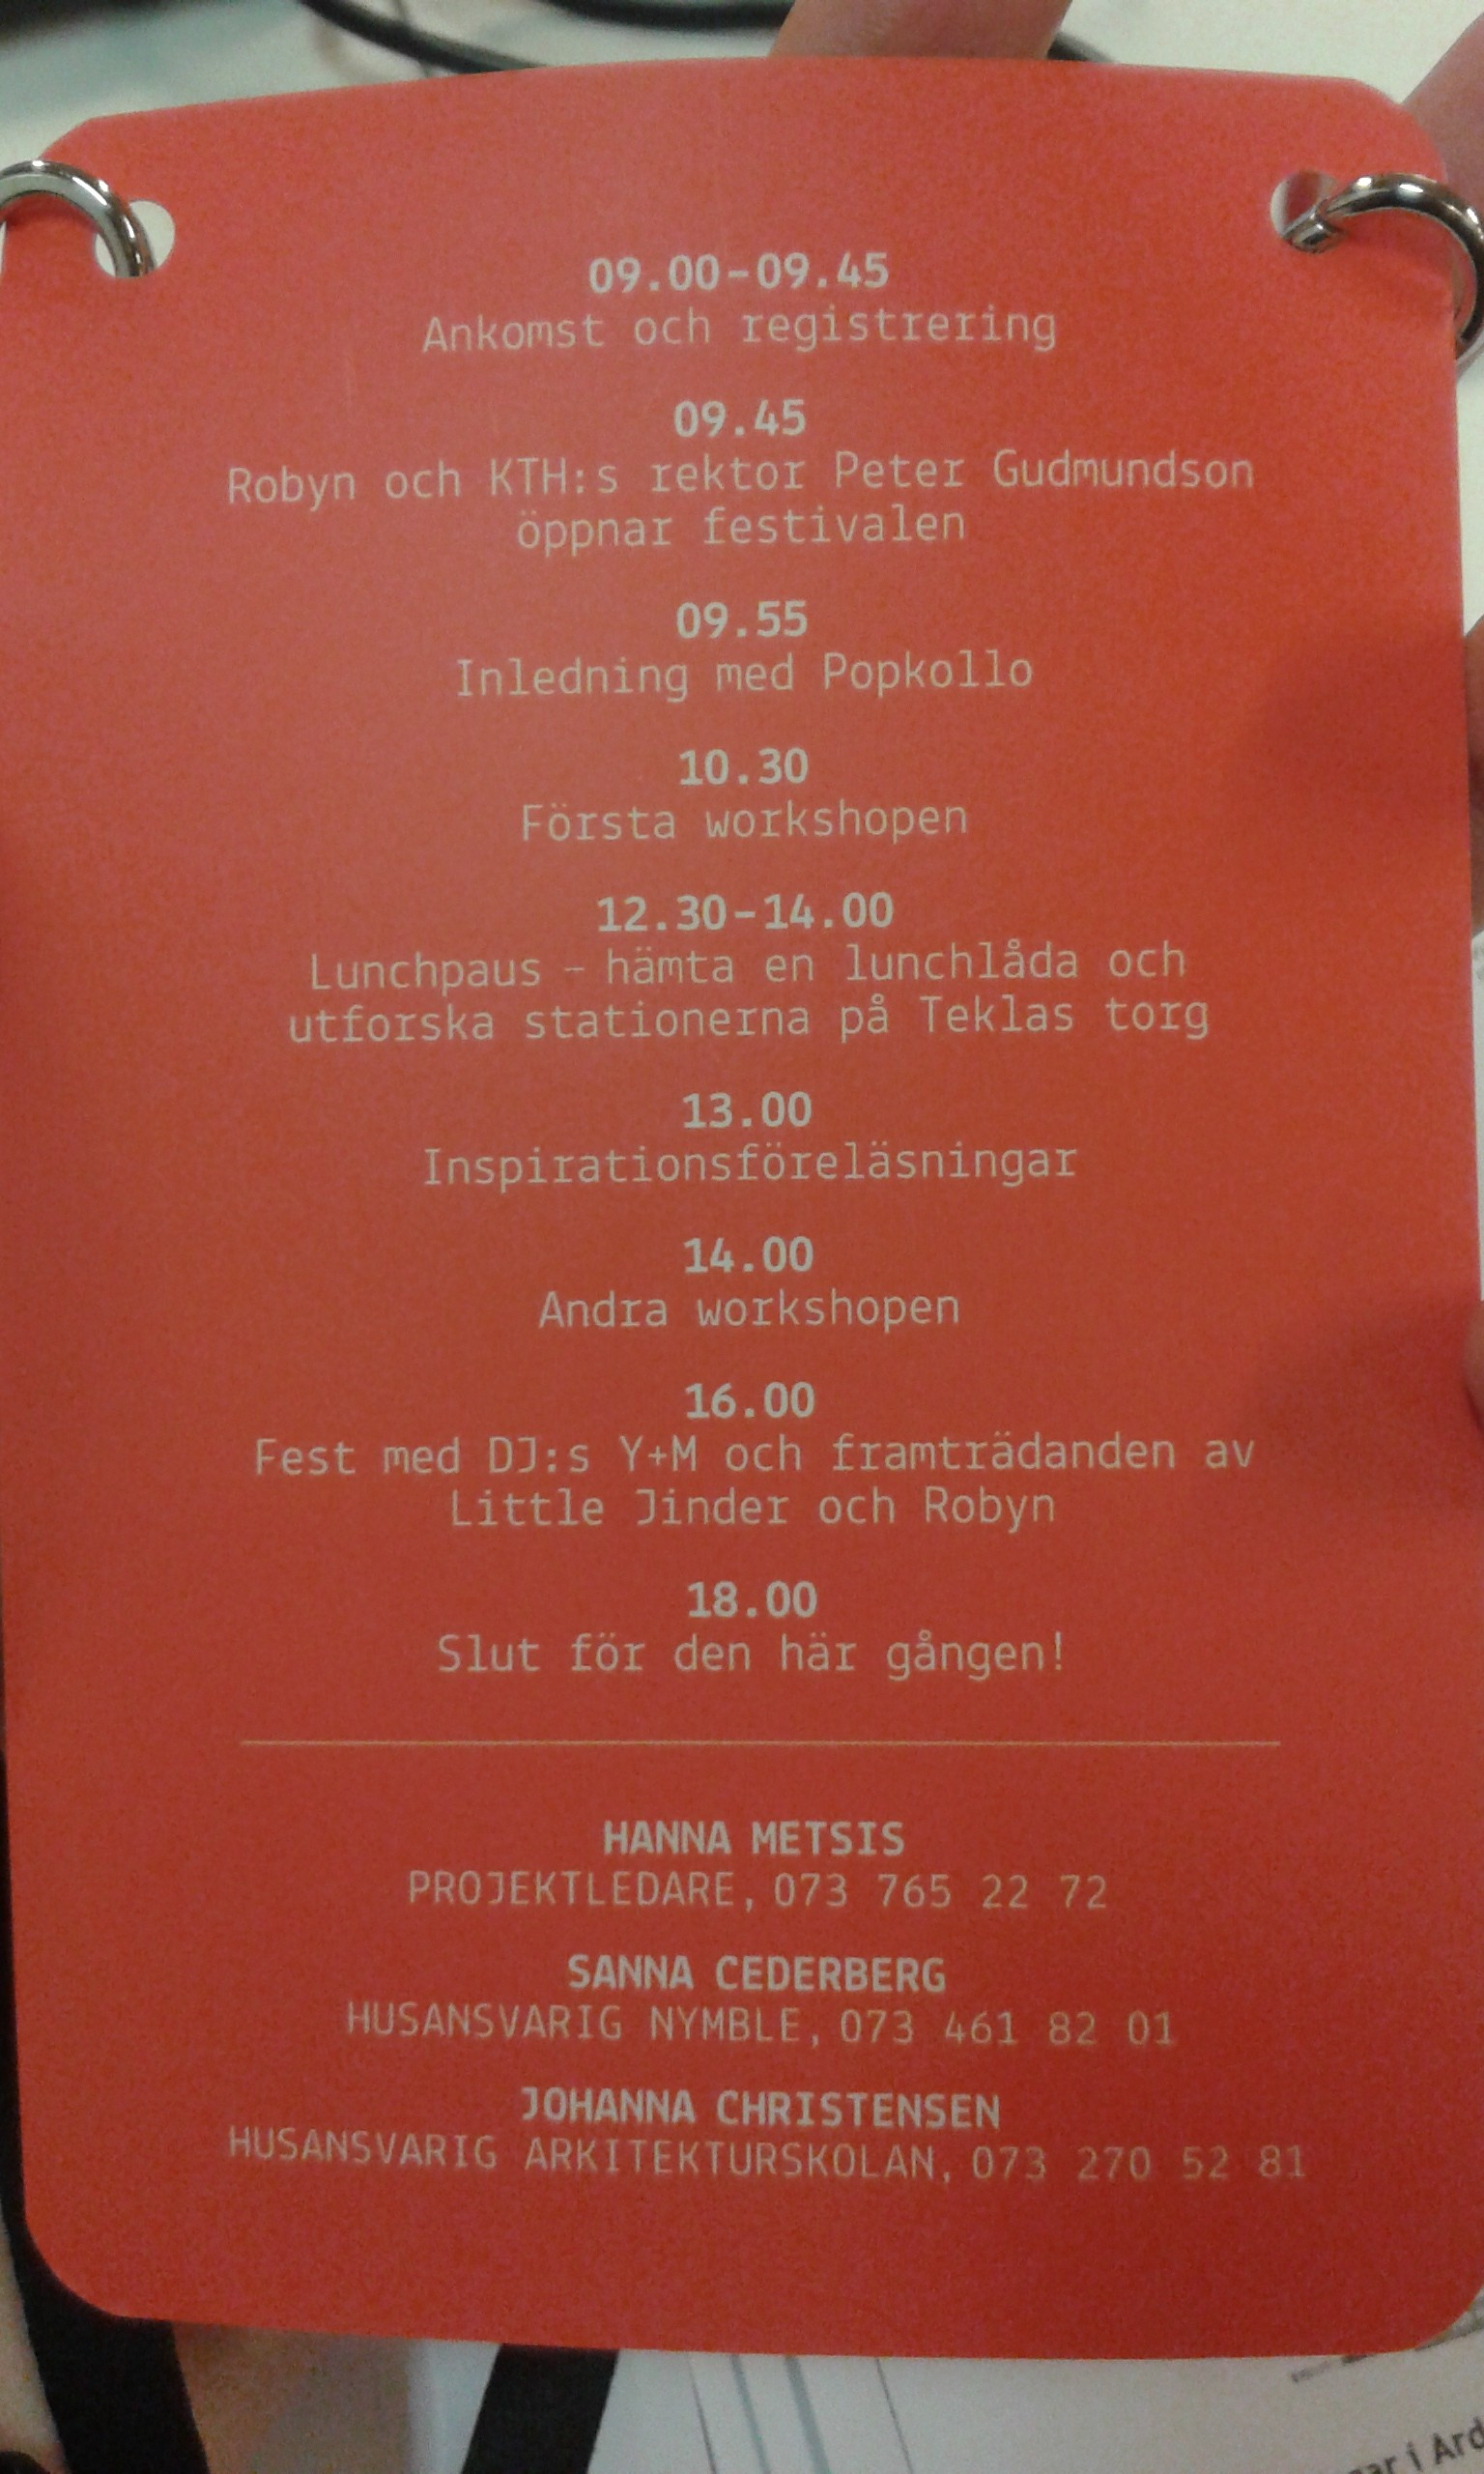 Dagens program.